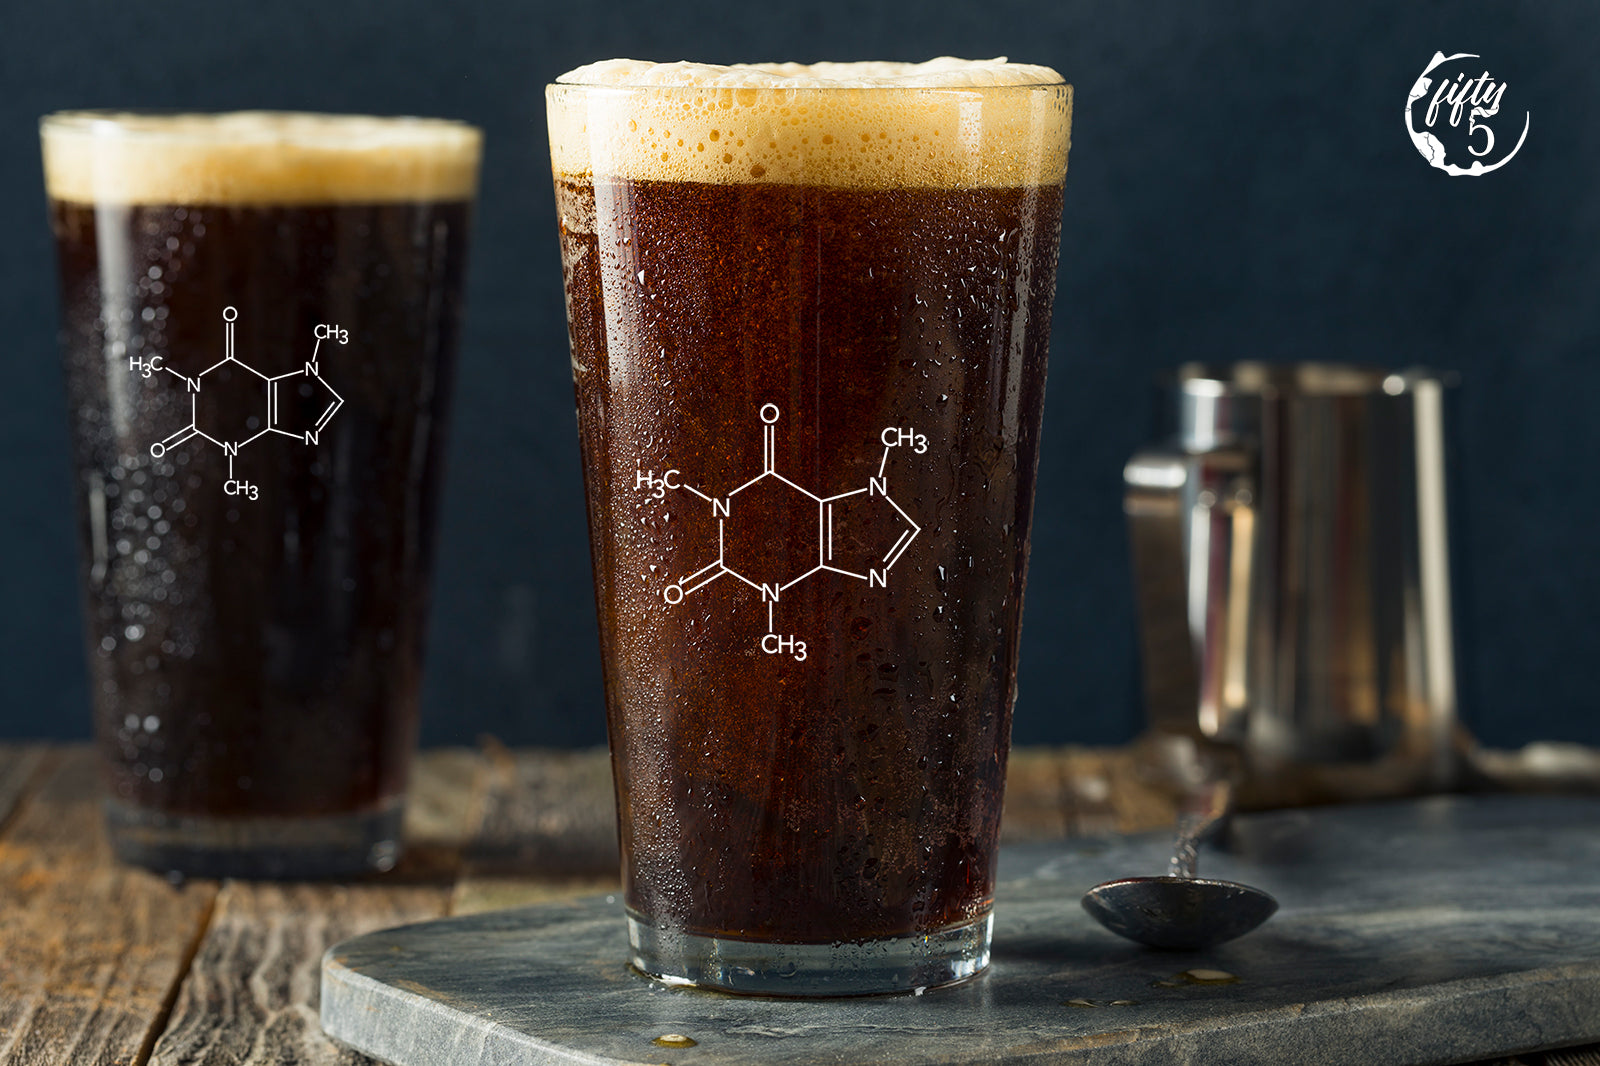 Caffeine Concentrations in Cold Brew Coffee